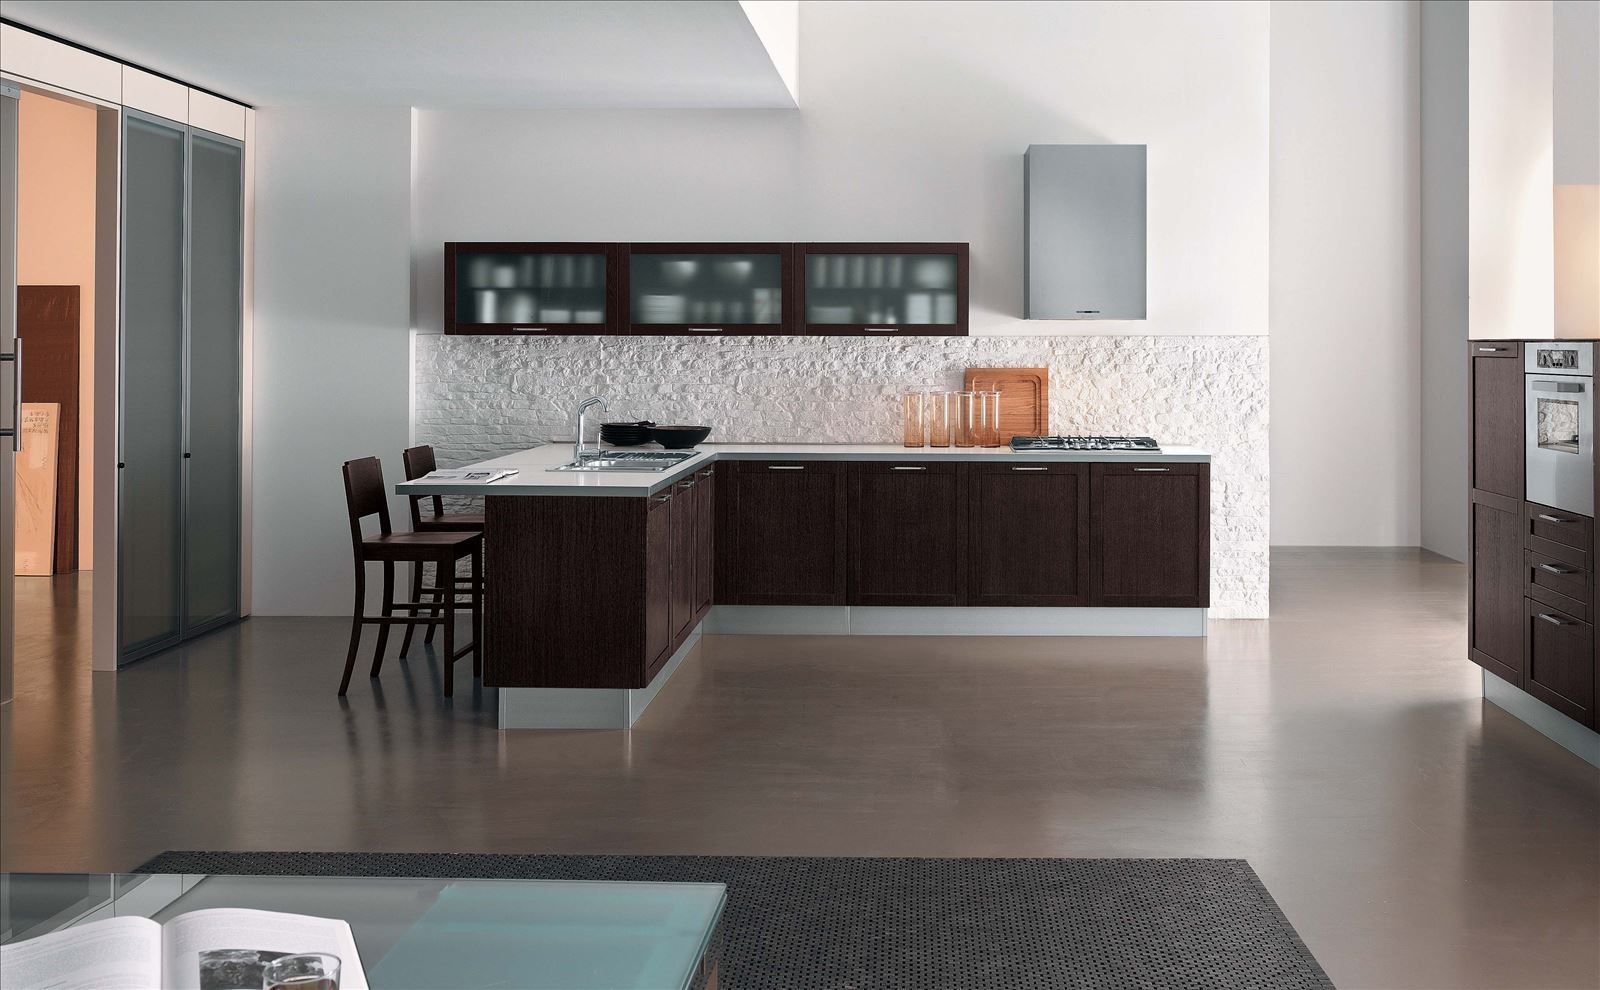 Modern Style Kitchen Design Ideas and Arrangement Advice with Photos. Brown and chocolate color combination of decoration and furniture set for the kitchen with whitwashed brickwork splashback